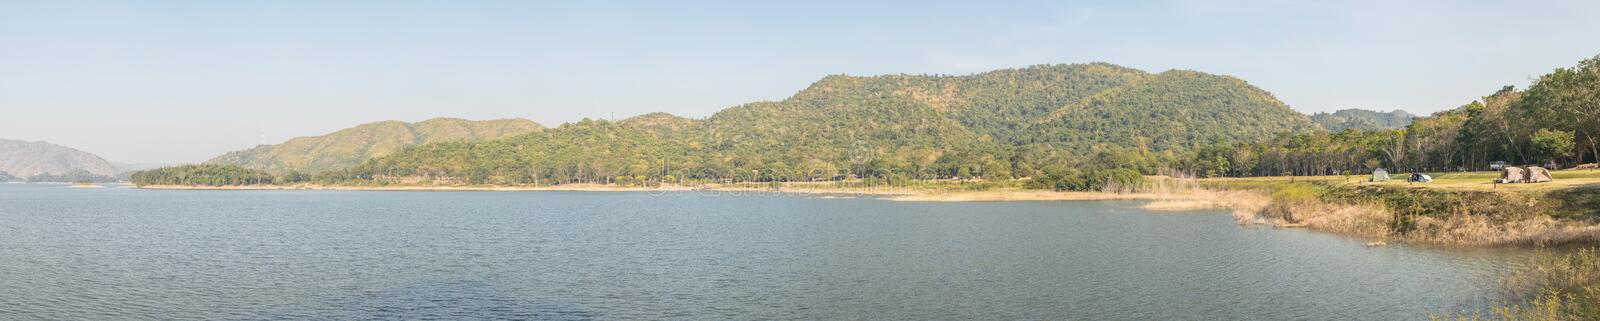 Panorama image of Tropical landscape view of Lake and Mountain at National Park. stock photo